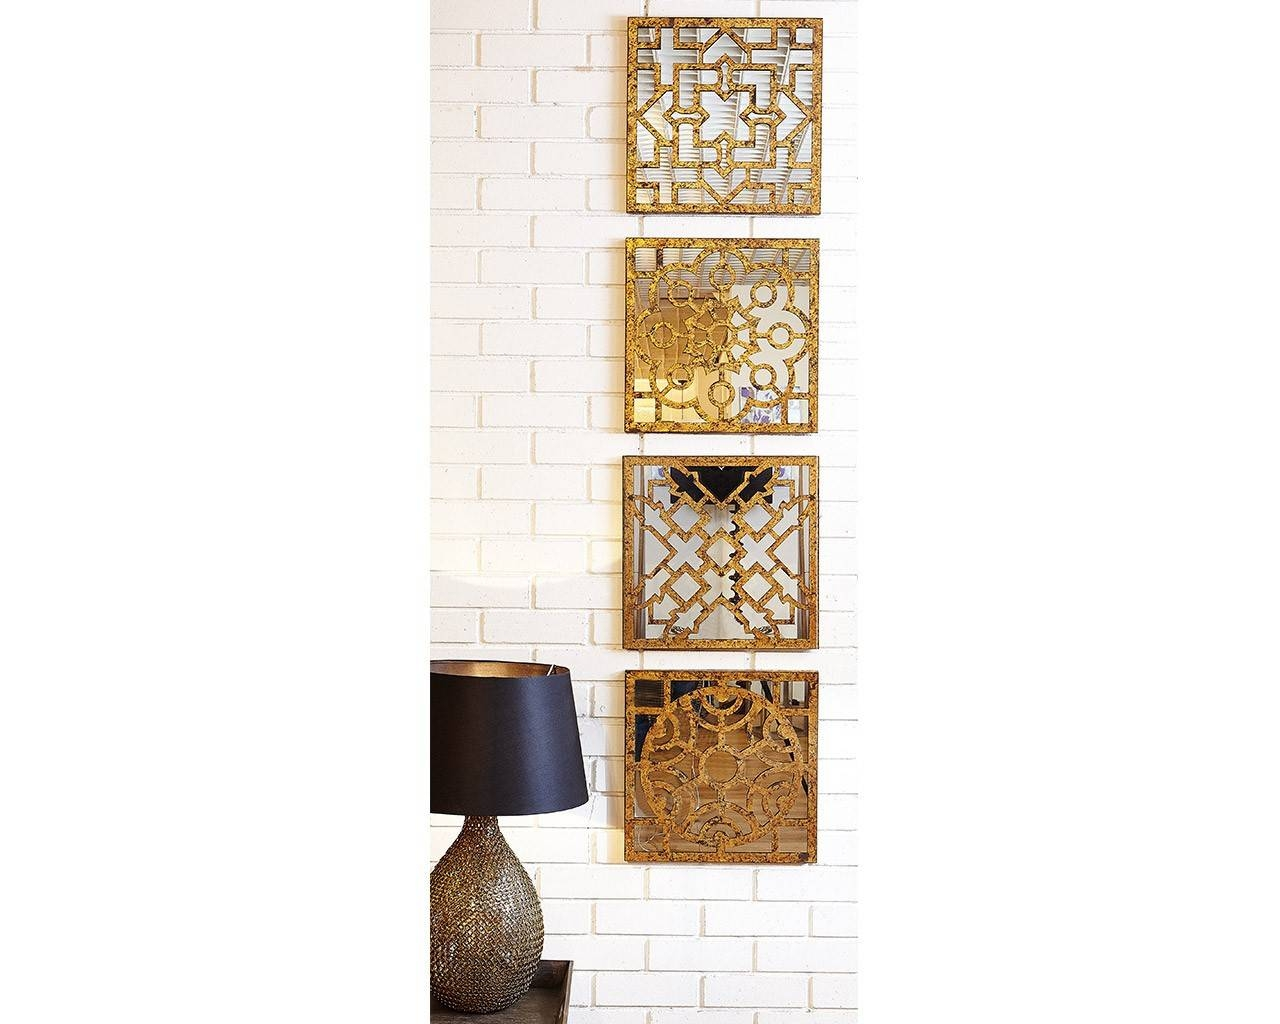 Antique Accessories – Fretwork Mirrored Wall Art Set With Regard To Most Up To Date Fretwork Wall Art (View 1 of 25)